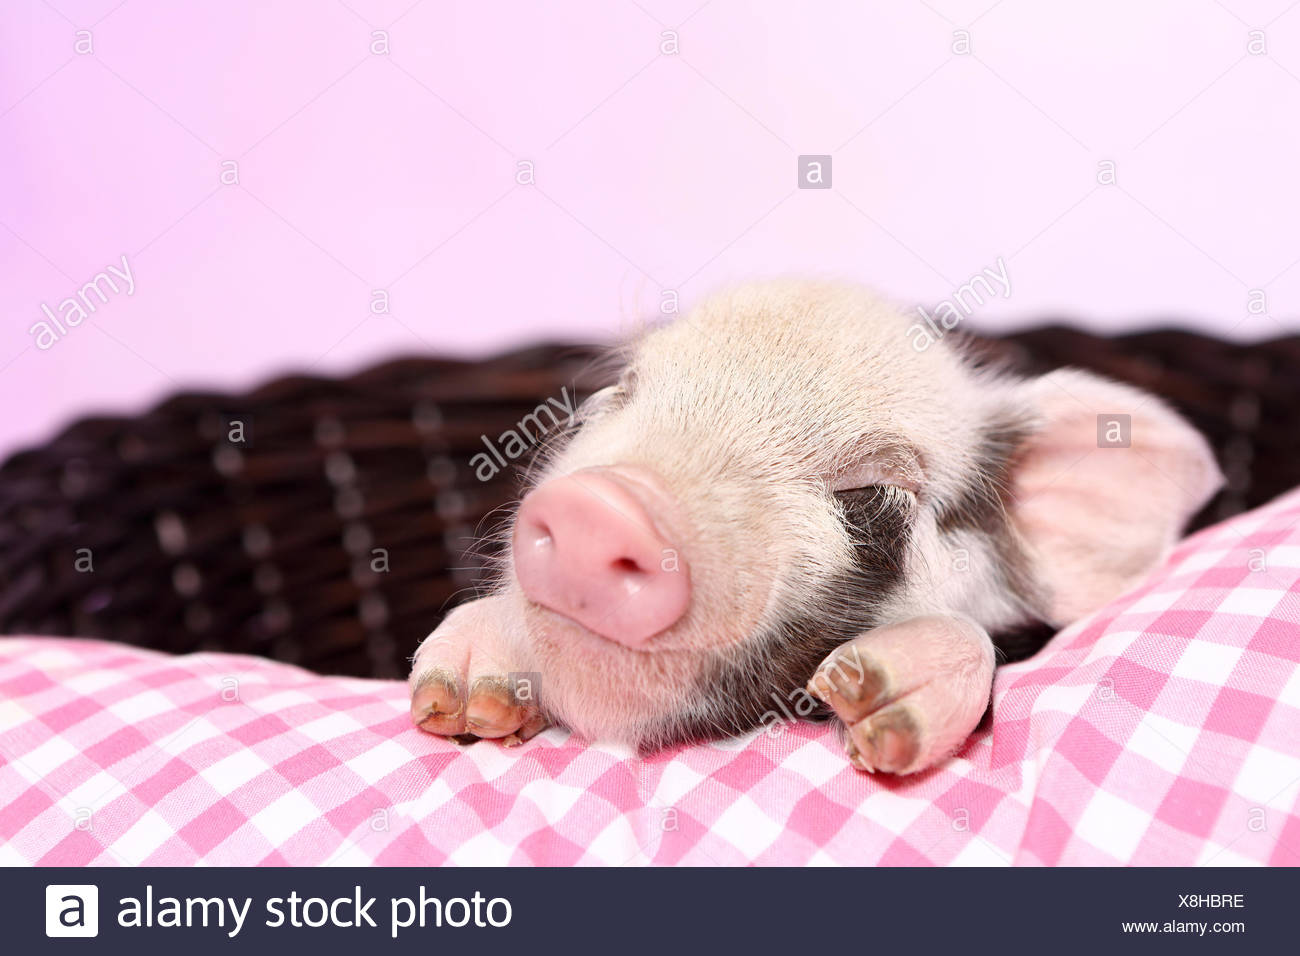 Domestic Pig, Turopolje x ?. Piglet sleeping on pink-checkered pillow in a basket. Studio picture seen against a pink background. Germany - Stock Image